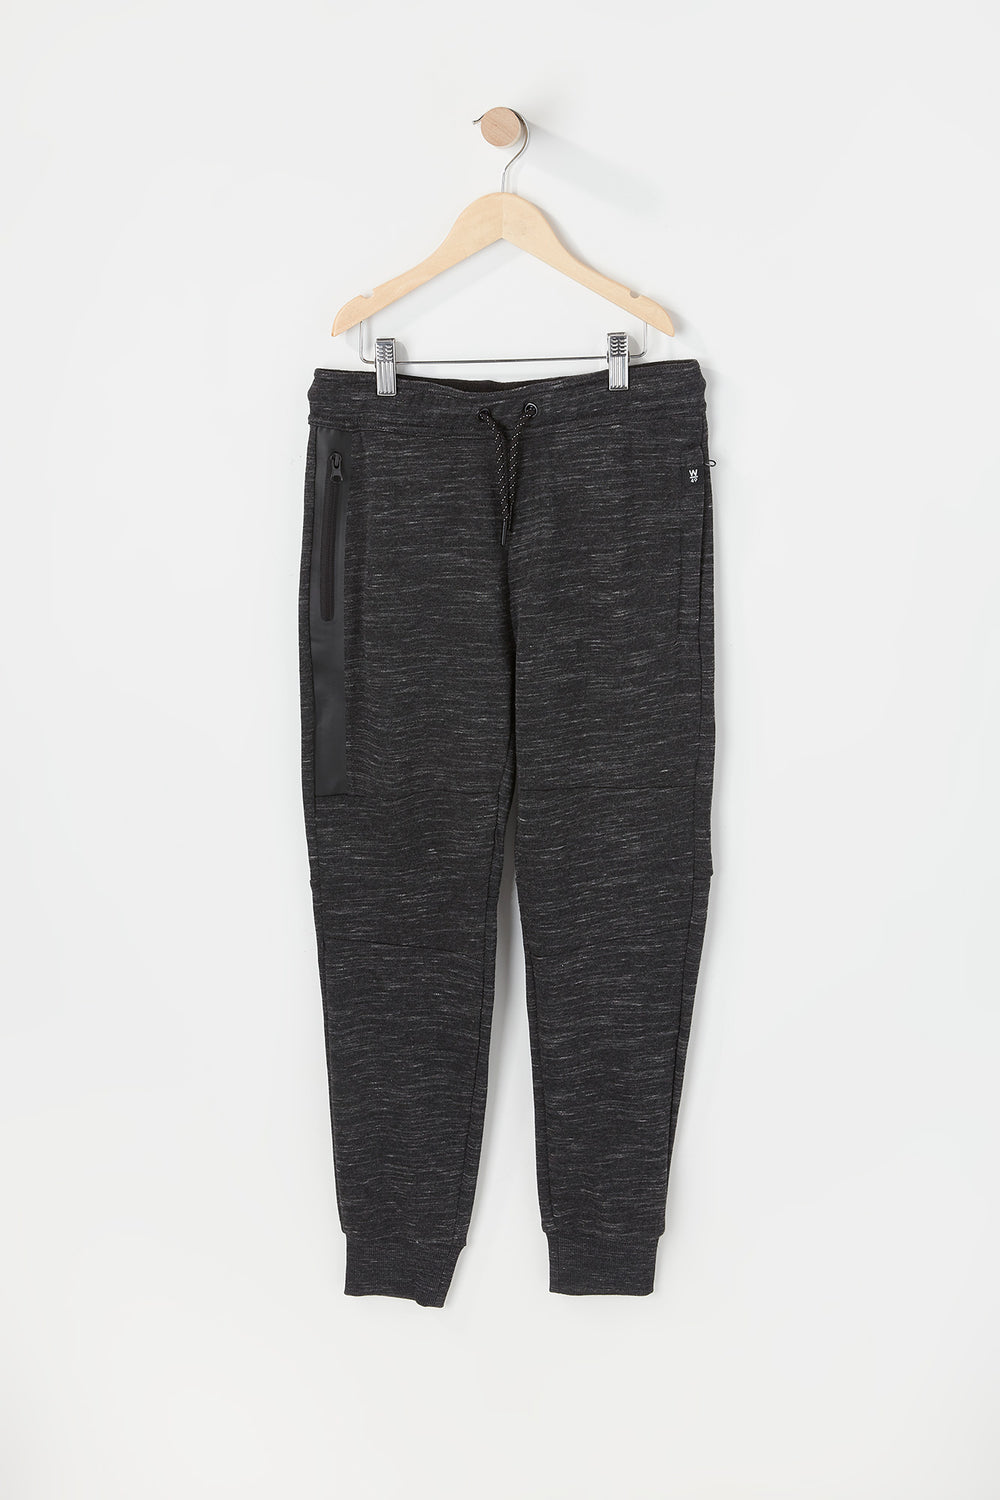 West49 Youth Spacedye Jogger Charcoal